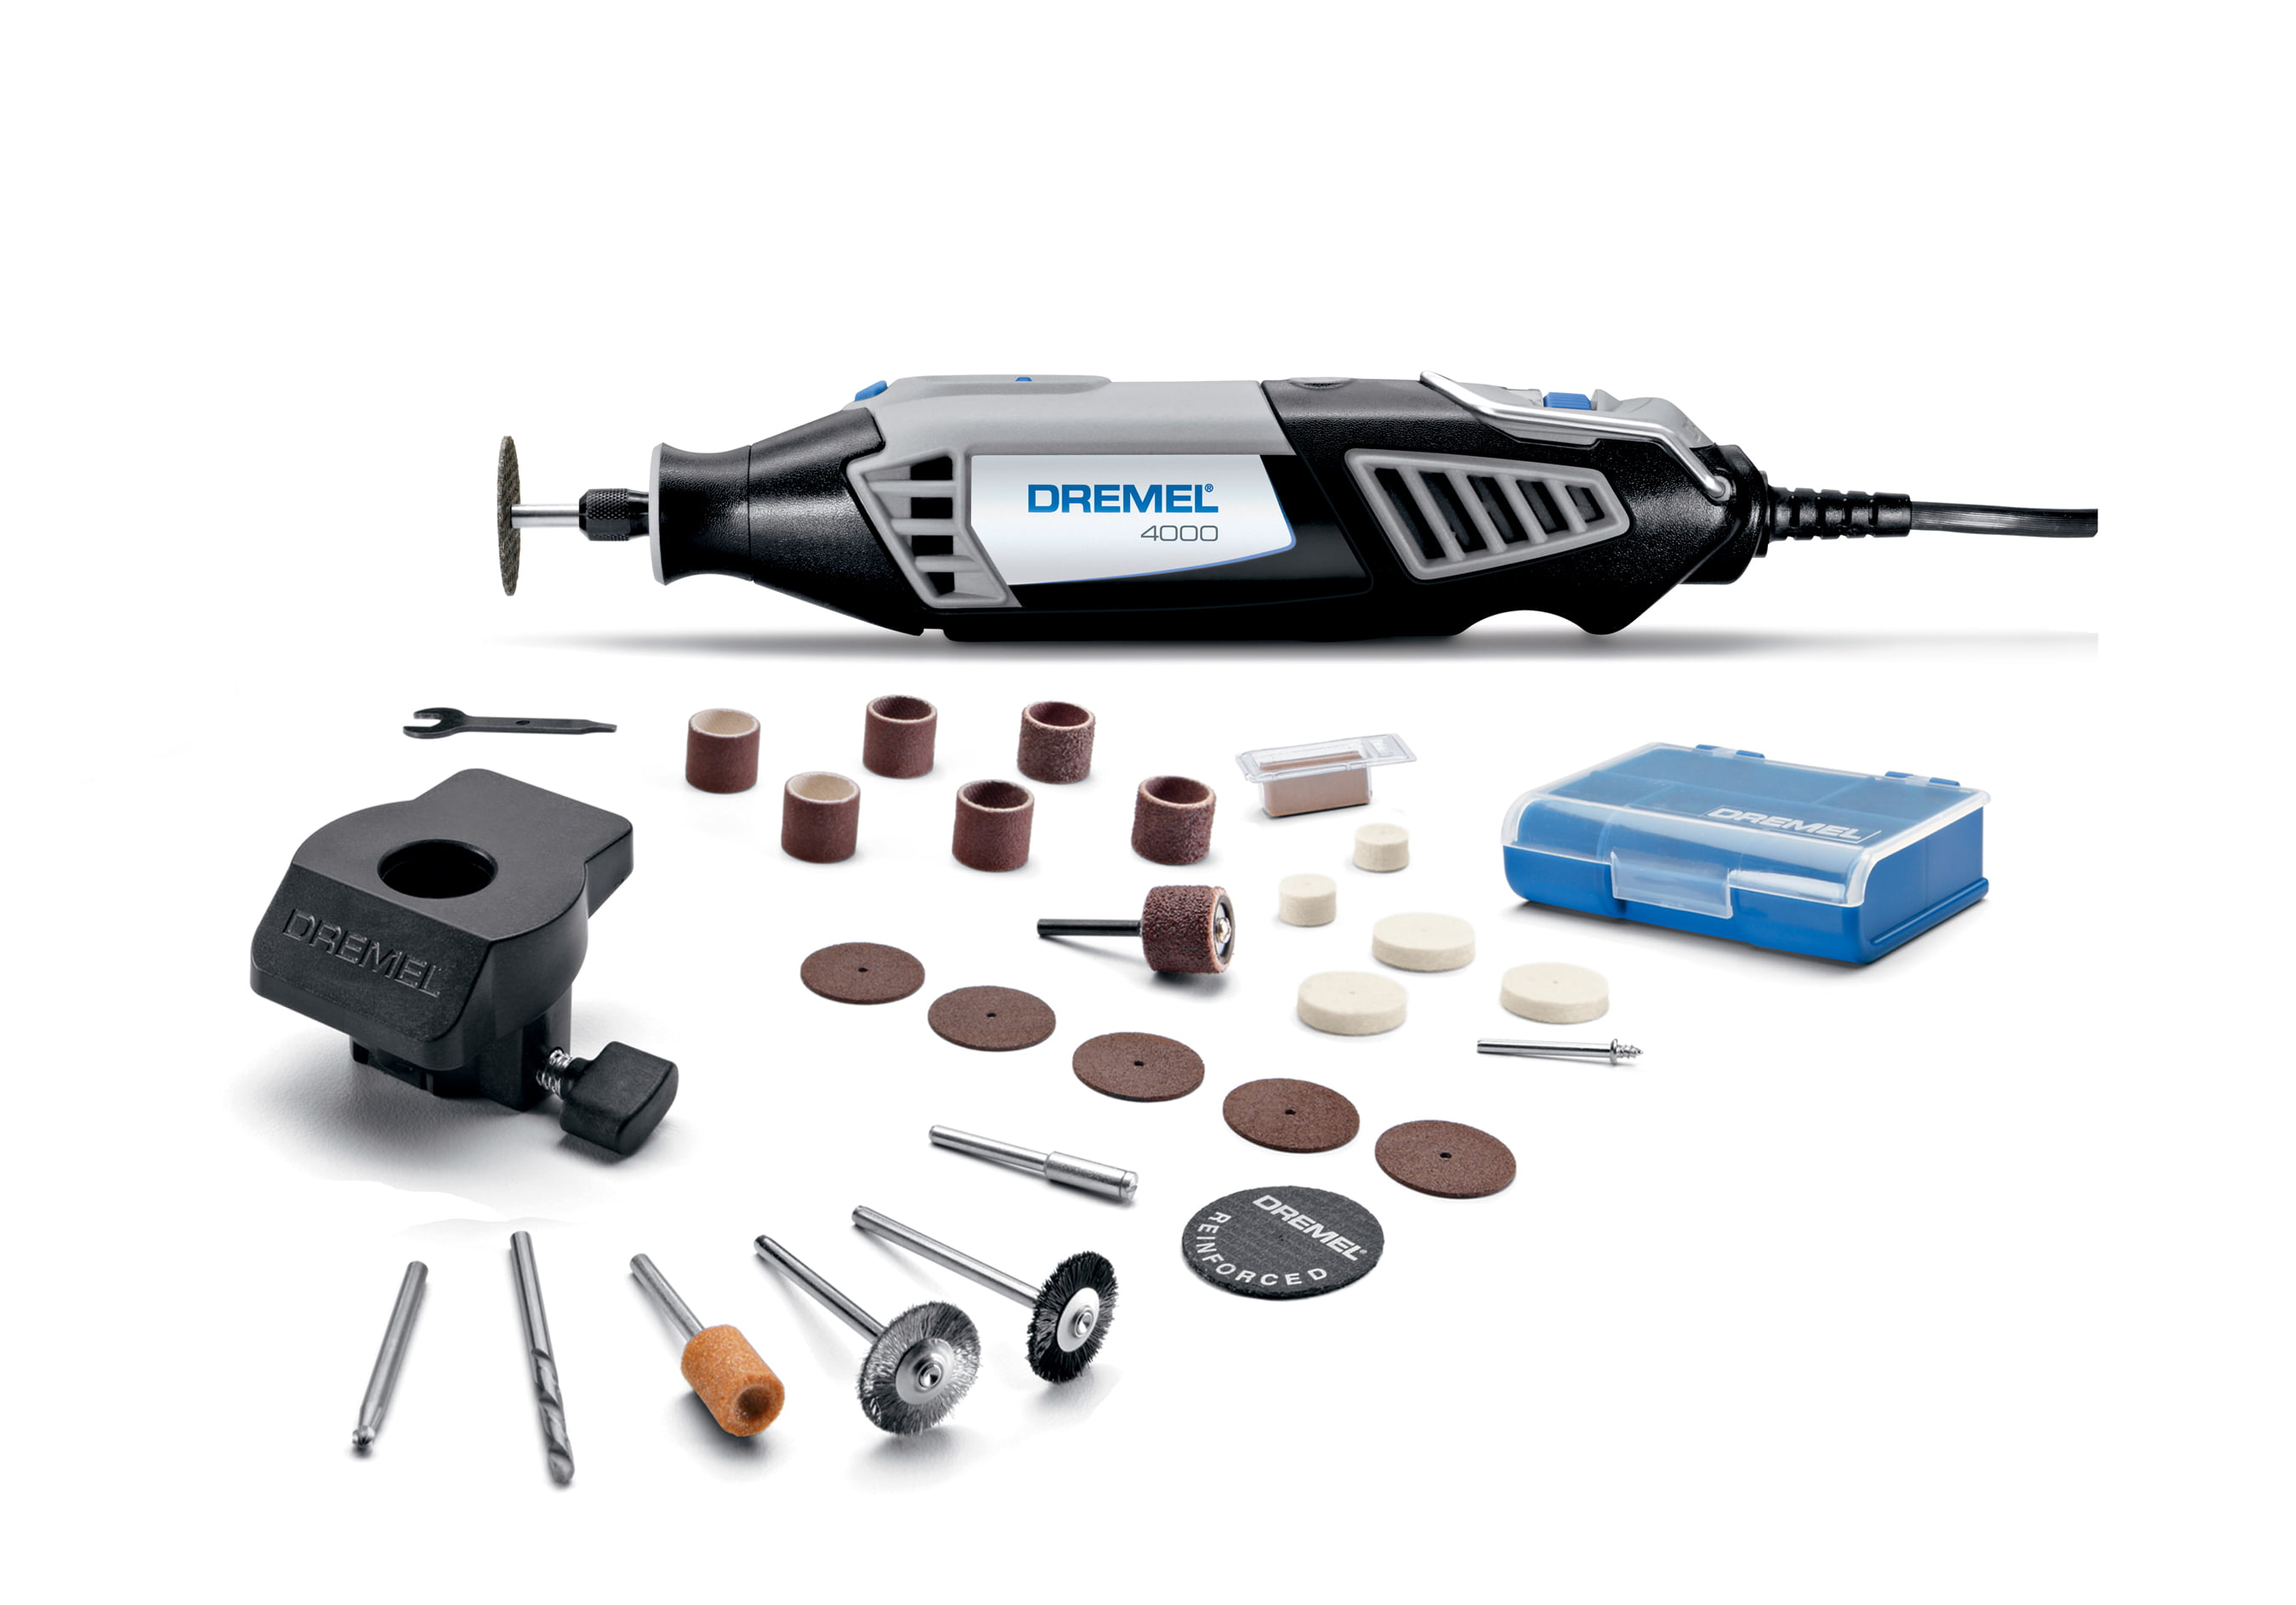 dremel 4000 1 26 1 6 amp corded variable speed rotary tool with accessories ebay. Black Bedroom Furniture Sets. Home Design Ideas